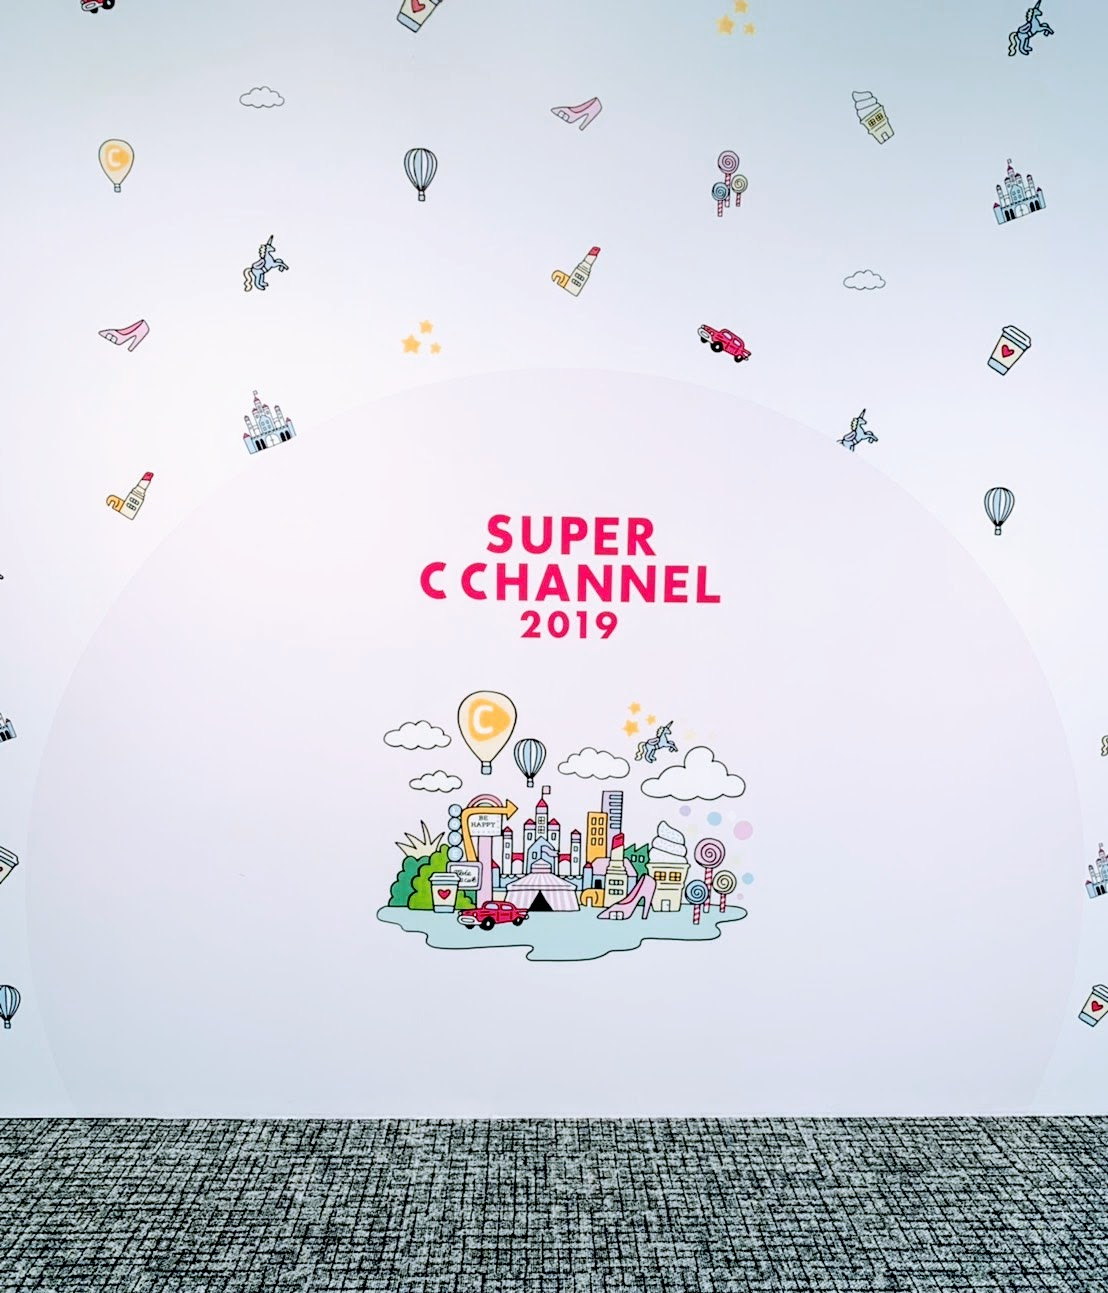 SUPER C CHANNEL 2019